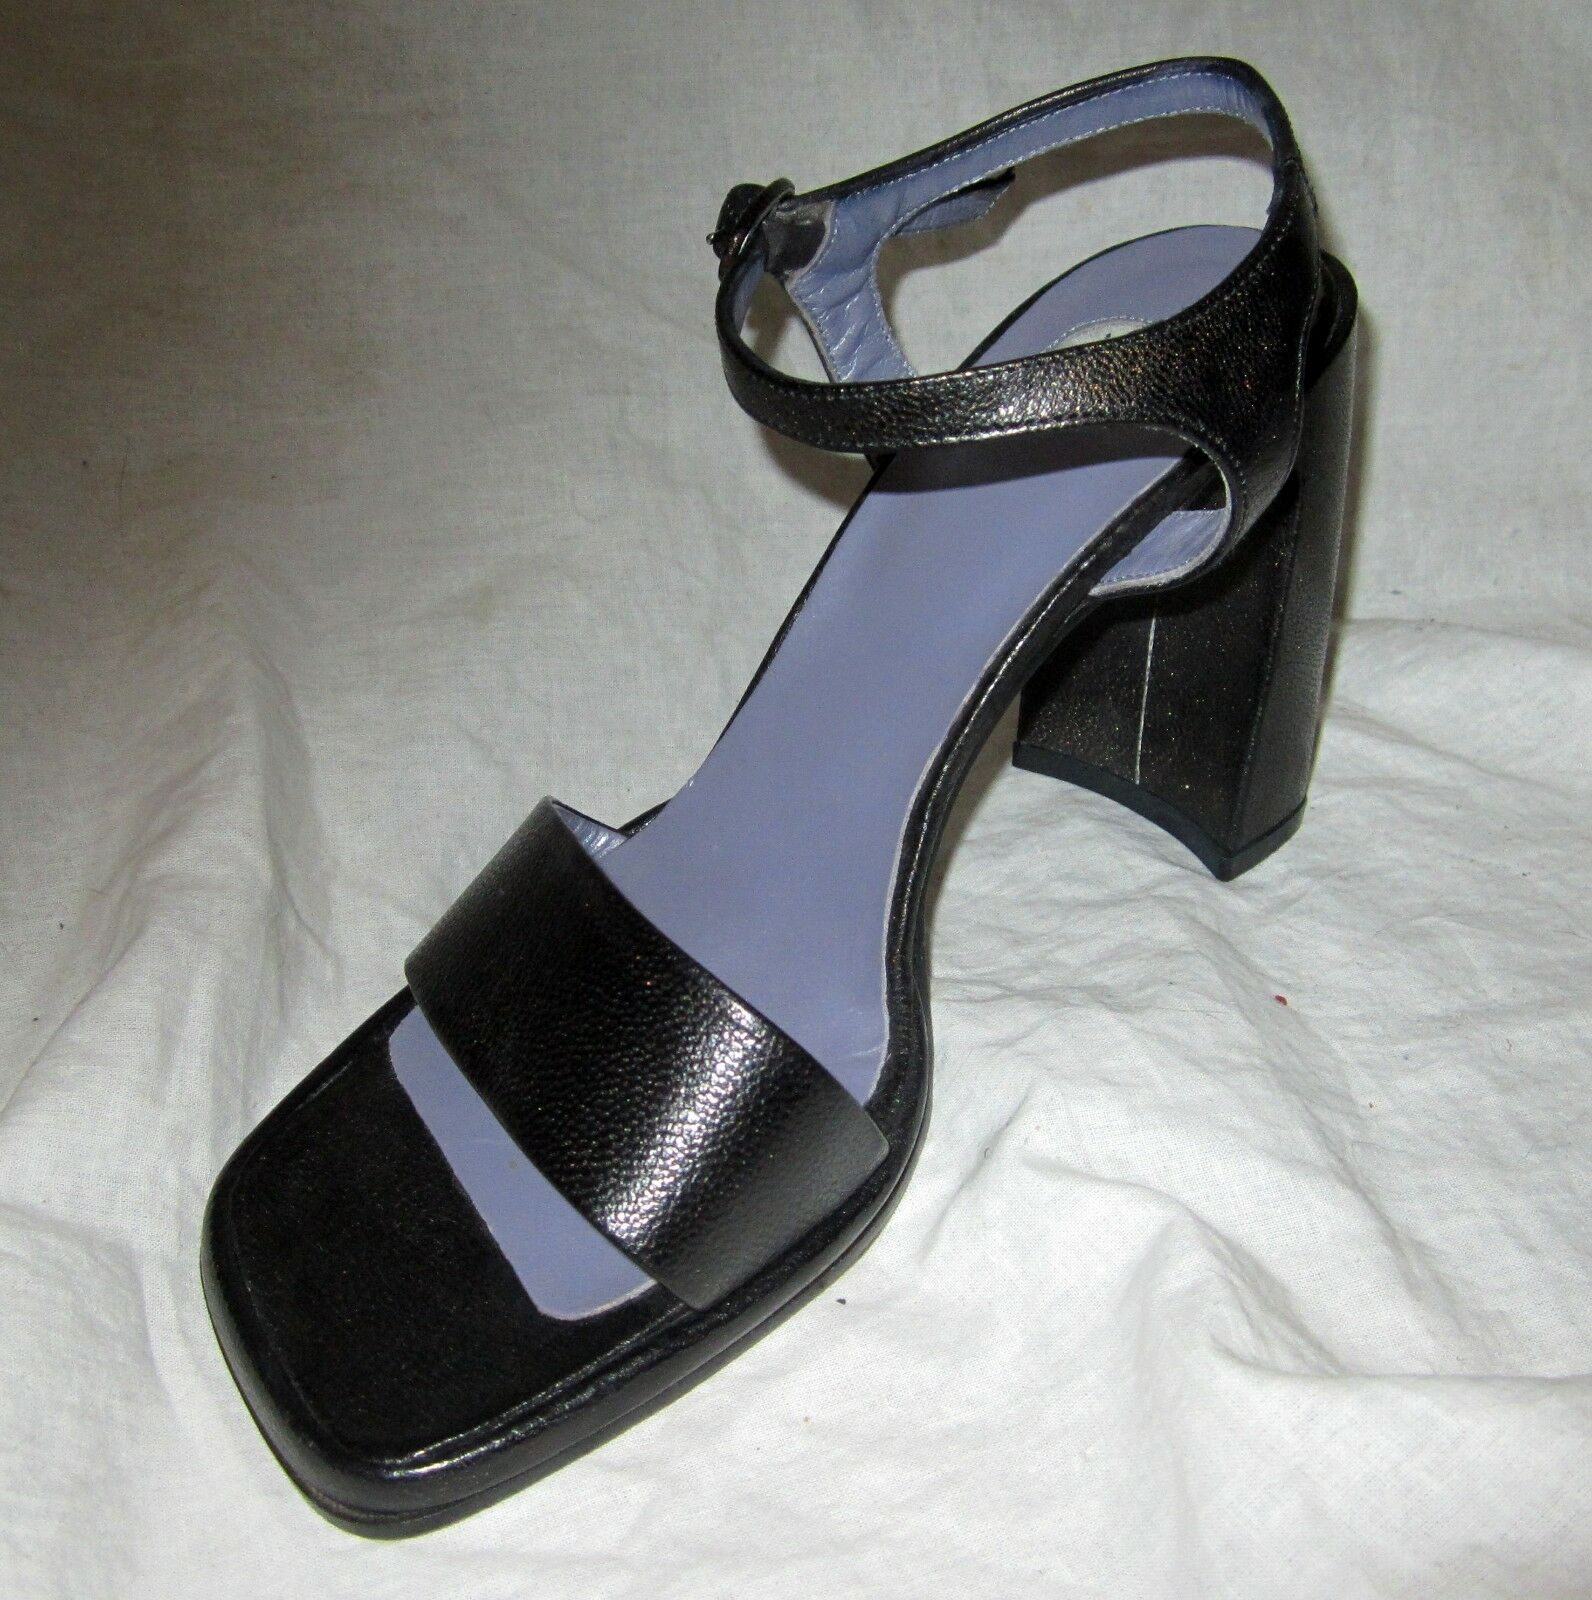 New High Heels Sandals shoes MADE IN ITALY Sz 8 Ankle Strap Black IXOS